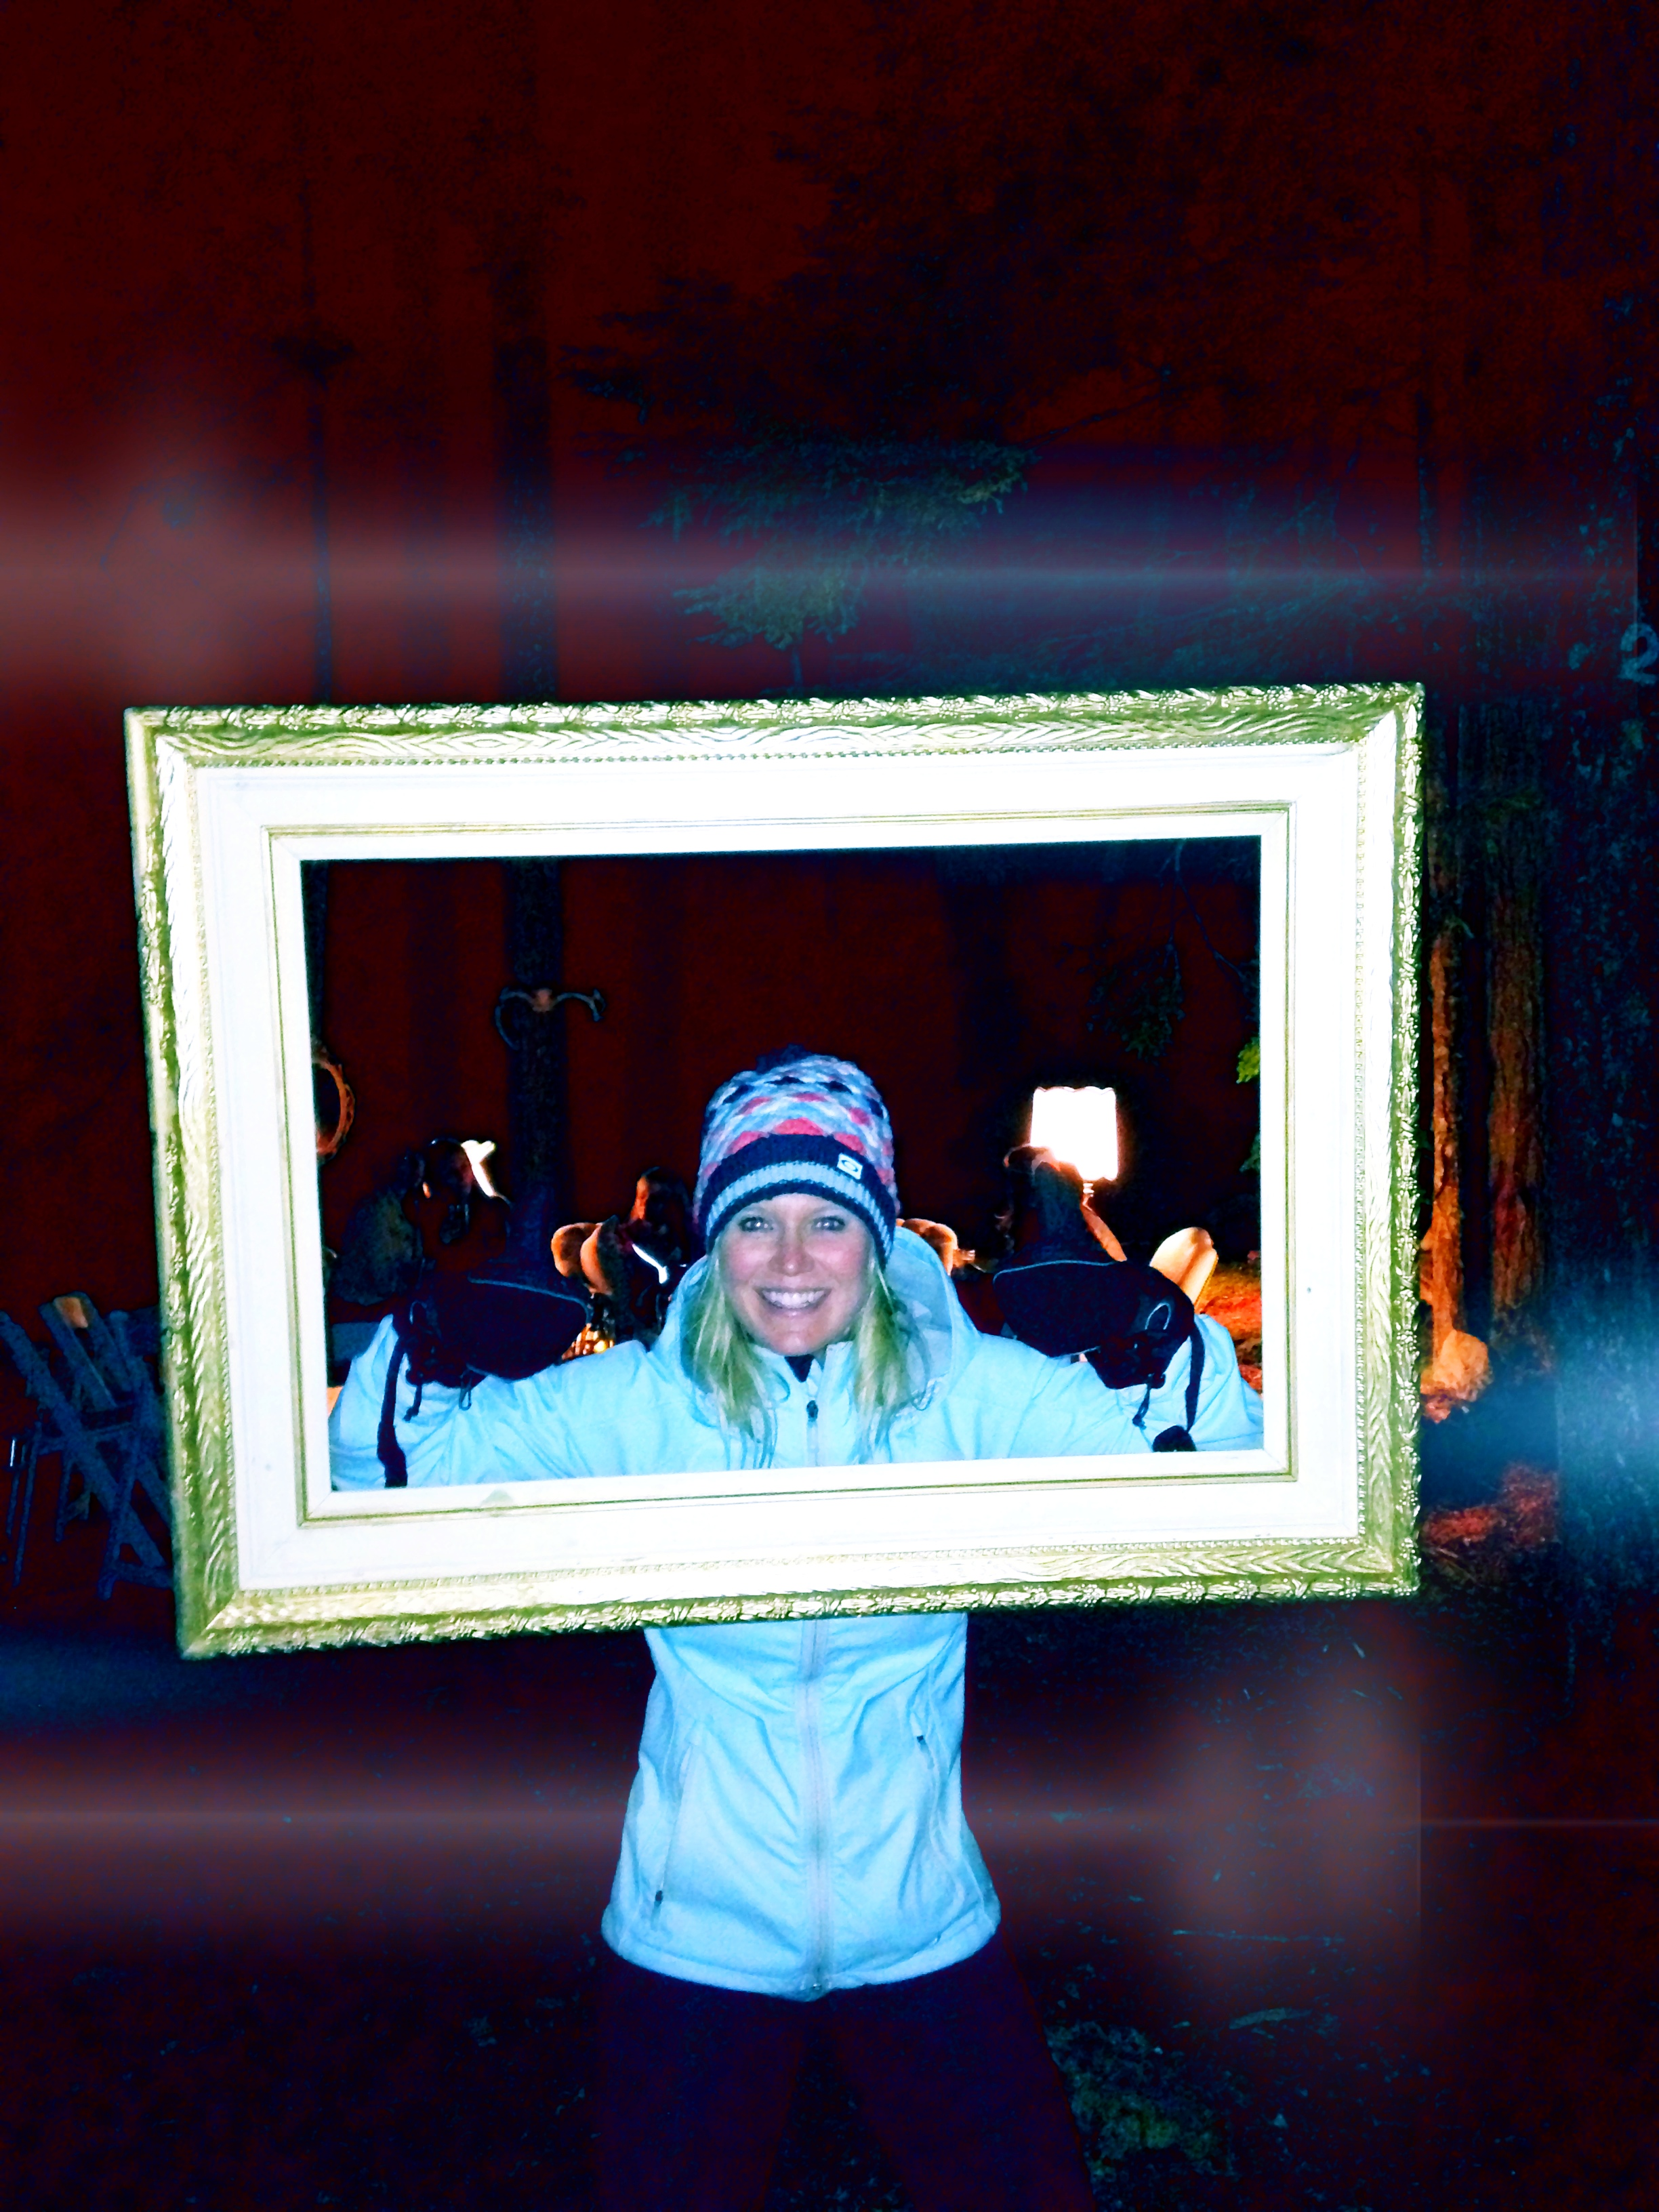 Pic Frame. And yes, it was cold. Maybe not cold enough to warrant ski mittens...but it was low 50's...(and if you know me...you know I LOVE any reason to wear my ski mittens ;) )